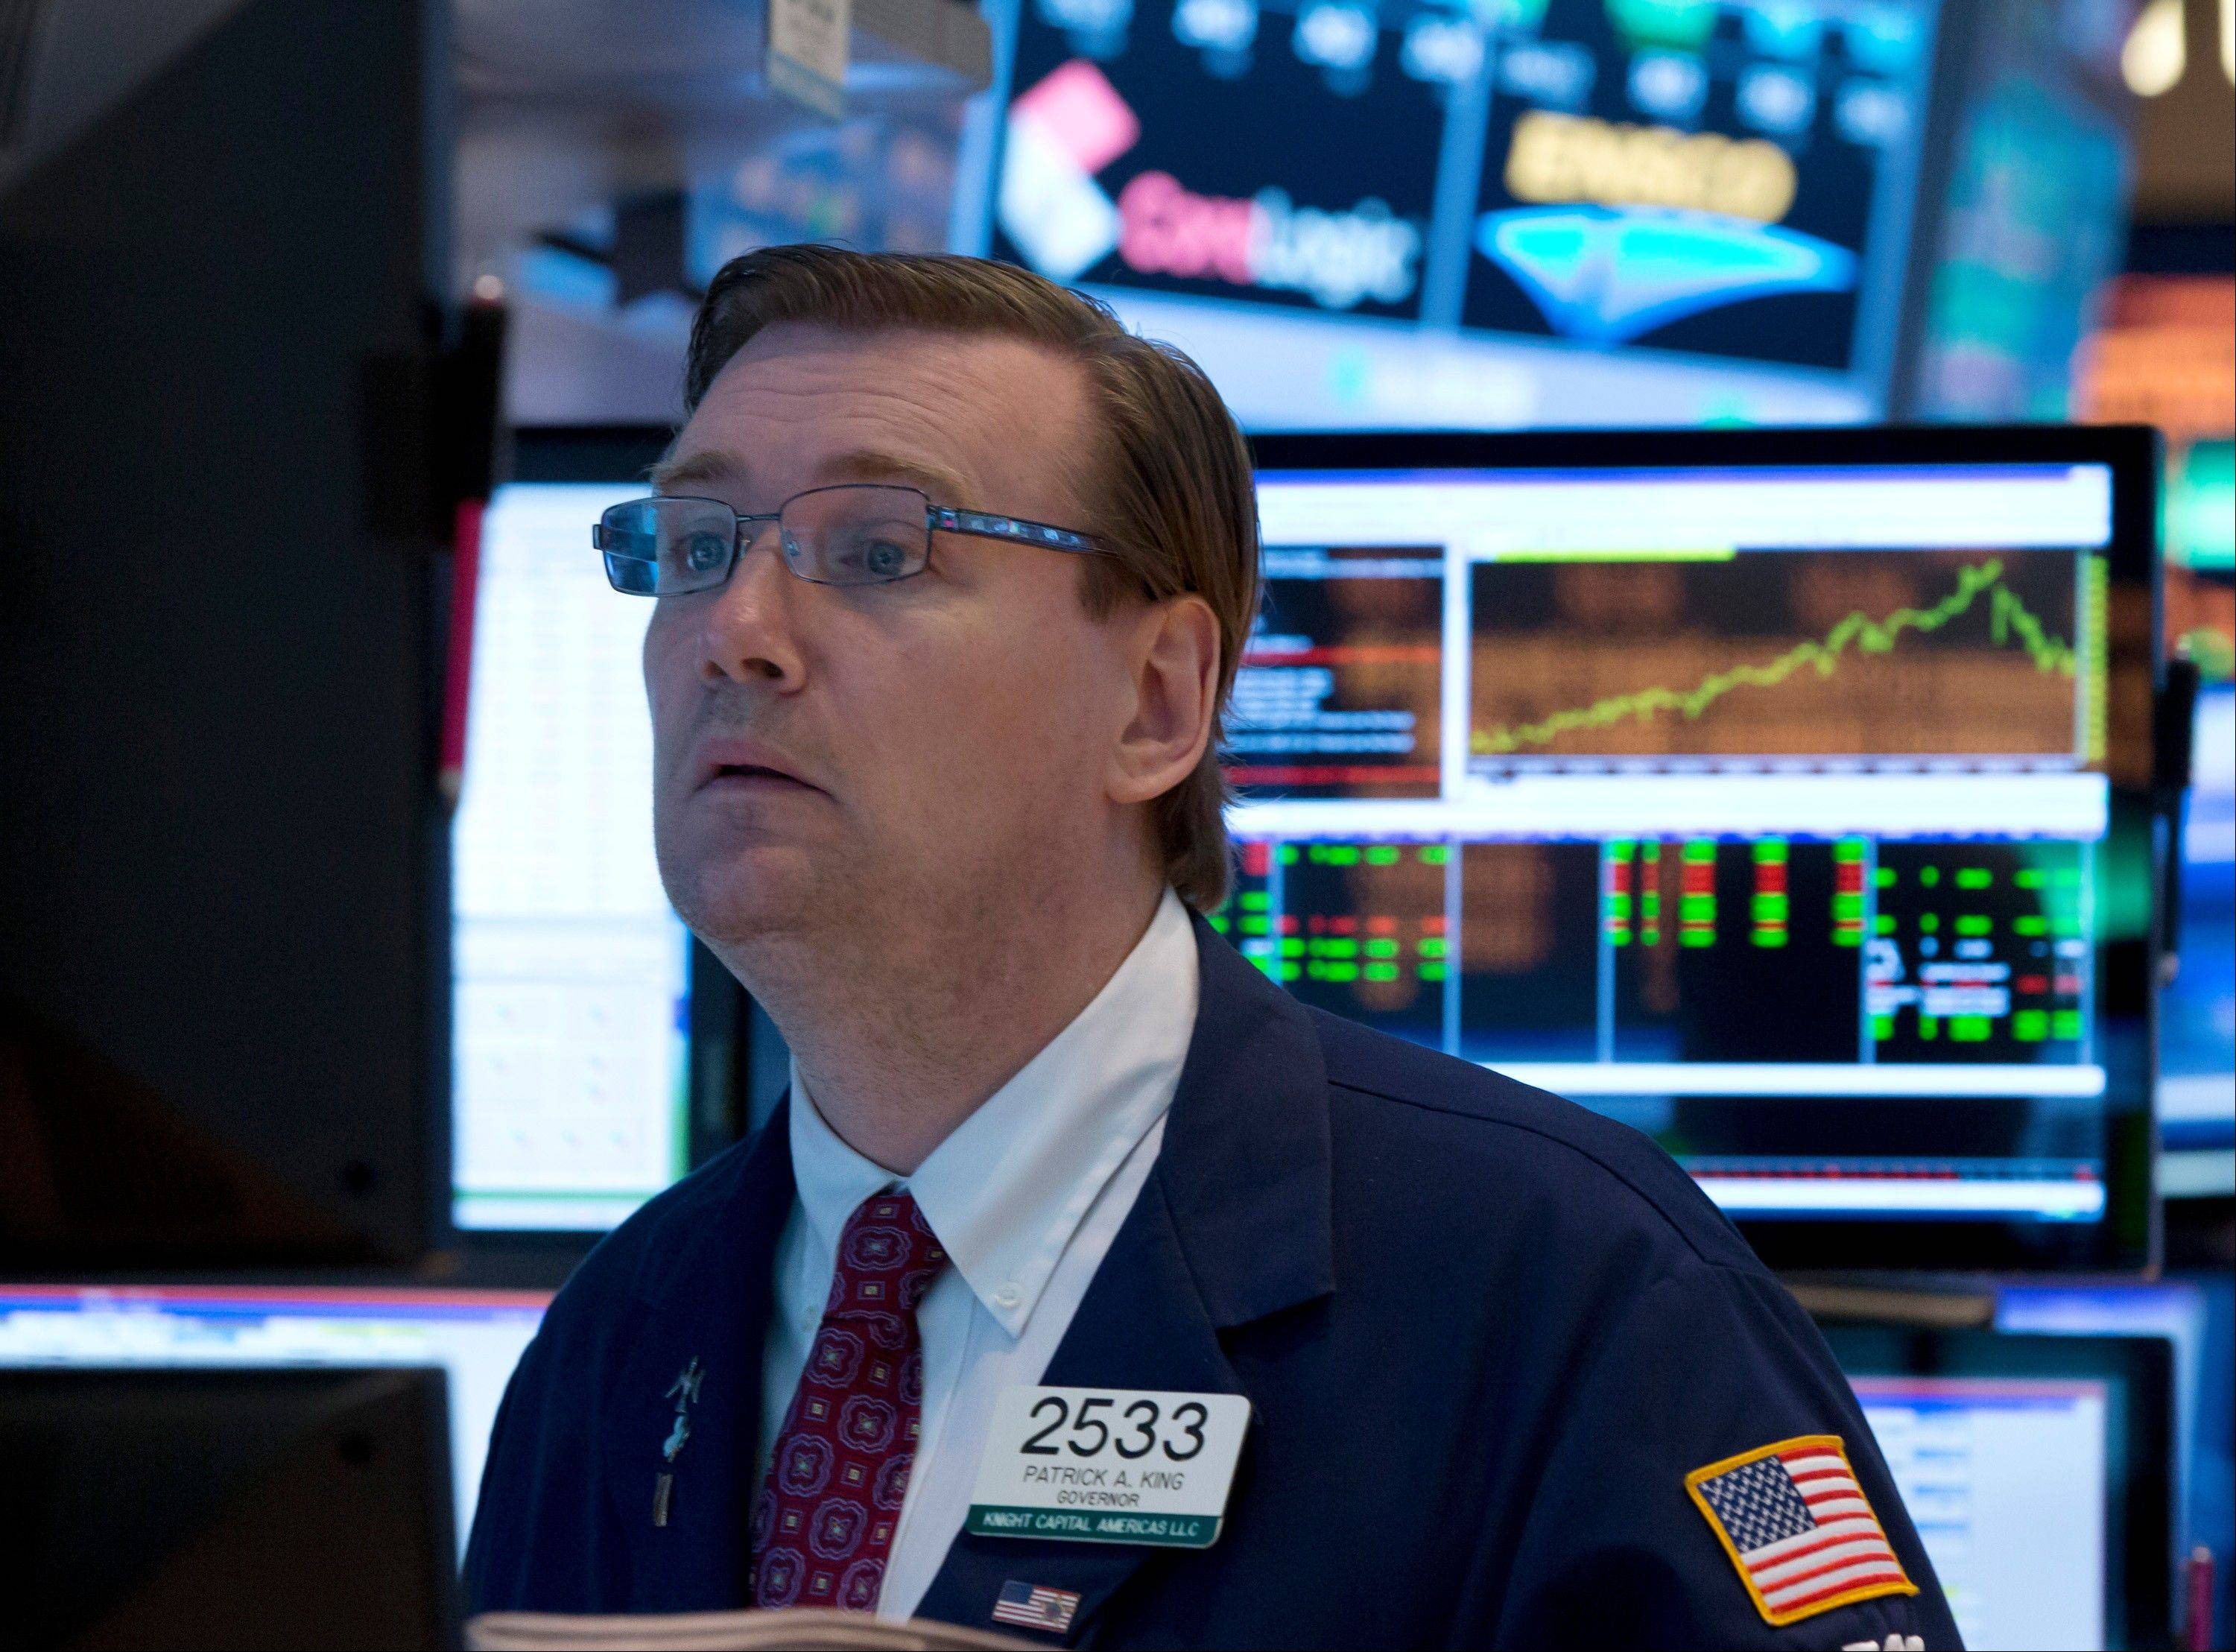 U.S. stocks rose for a second day, pushing the Standard & Poor's 500 Index to its highest in June, as investors awaited the outcome of a Federal Reserve policy meeting for clues to the central bank's plan for stimulus.